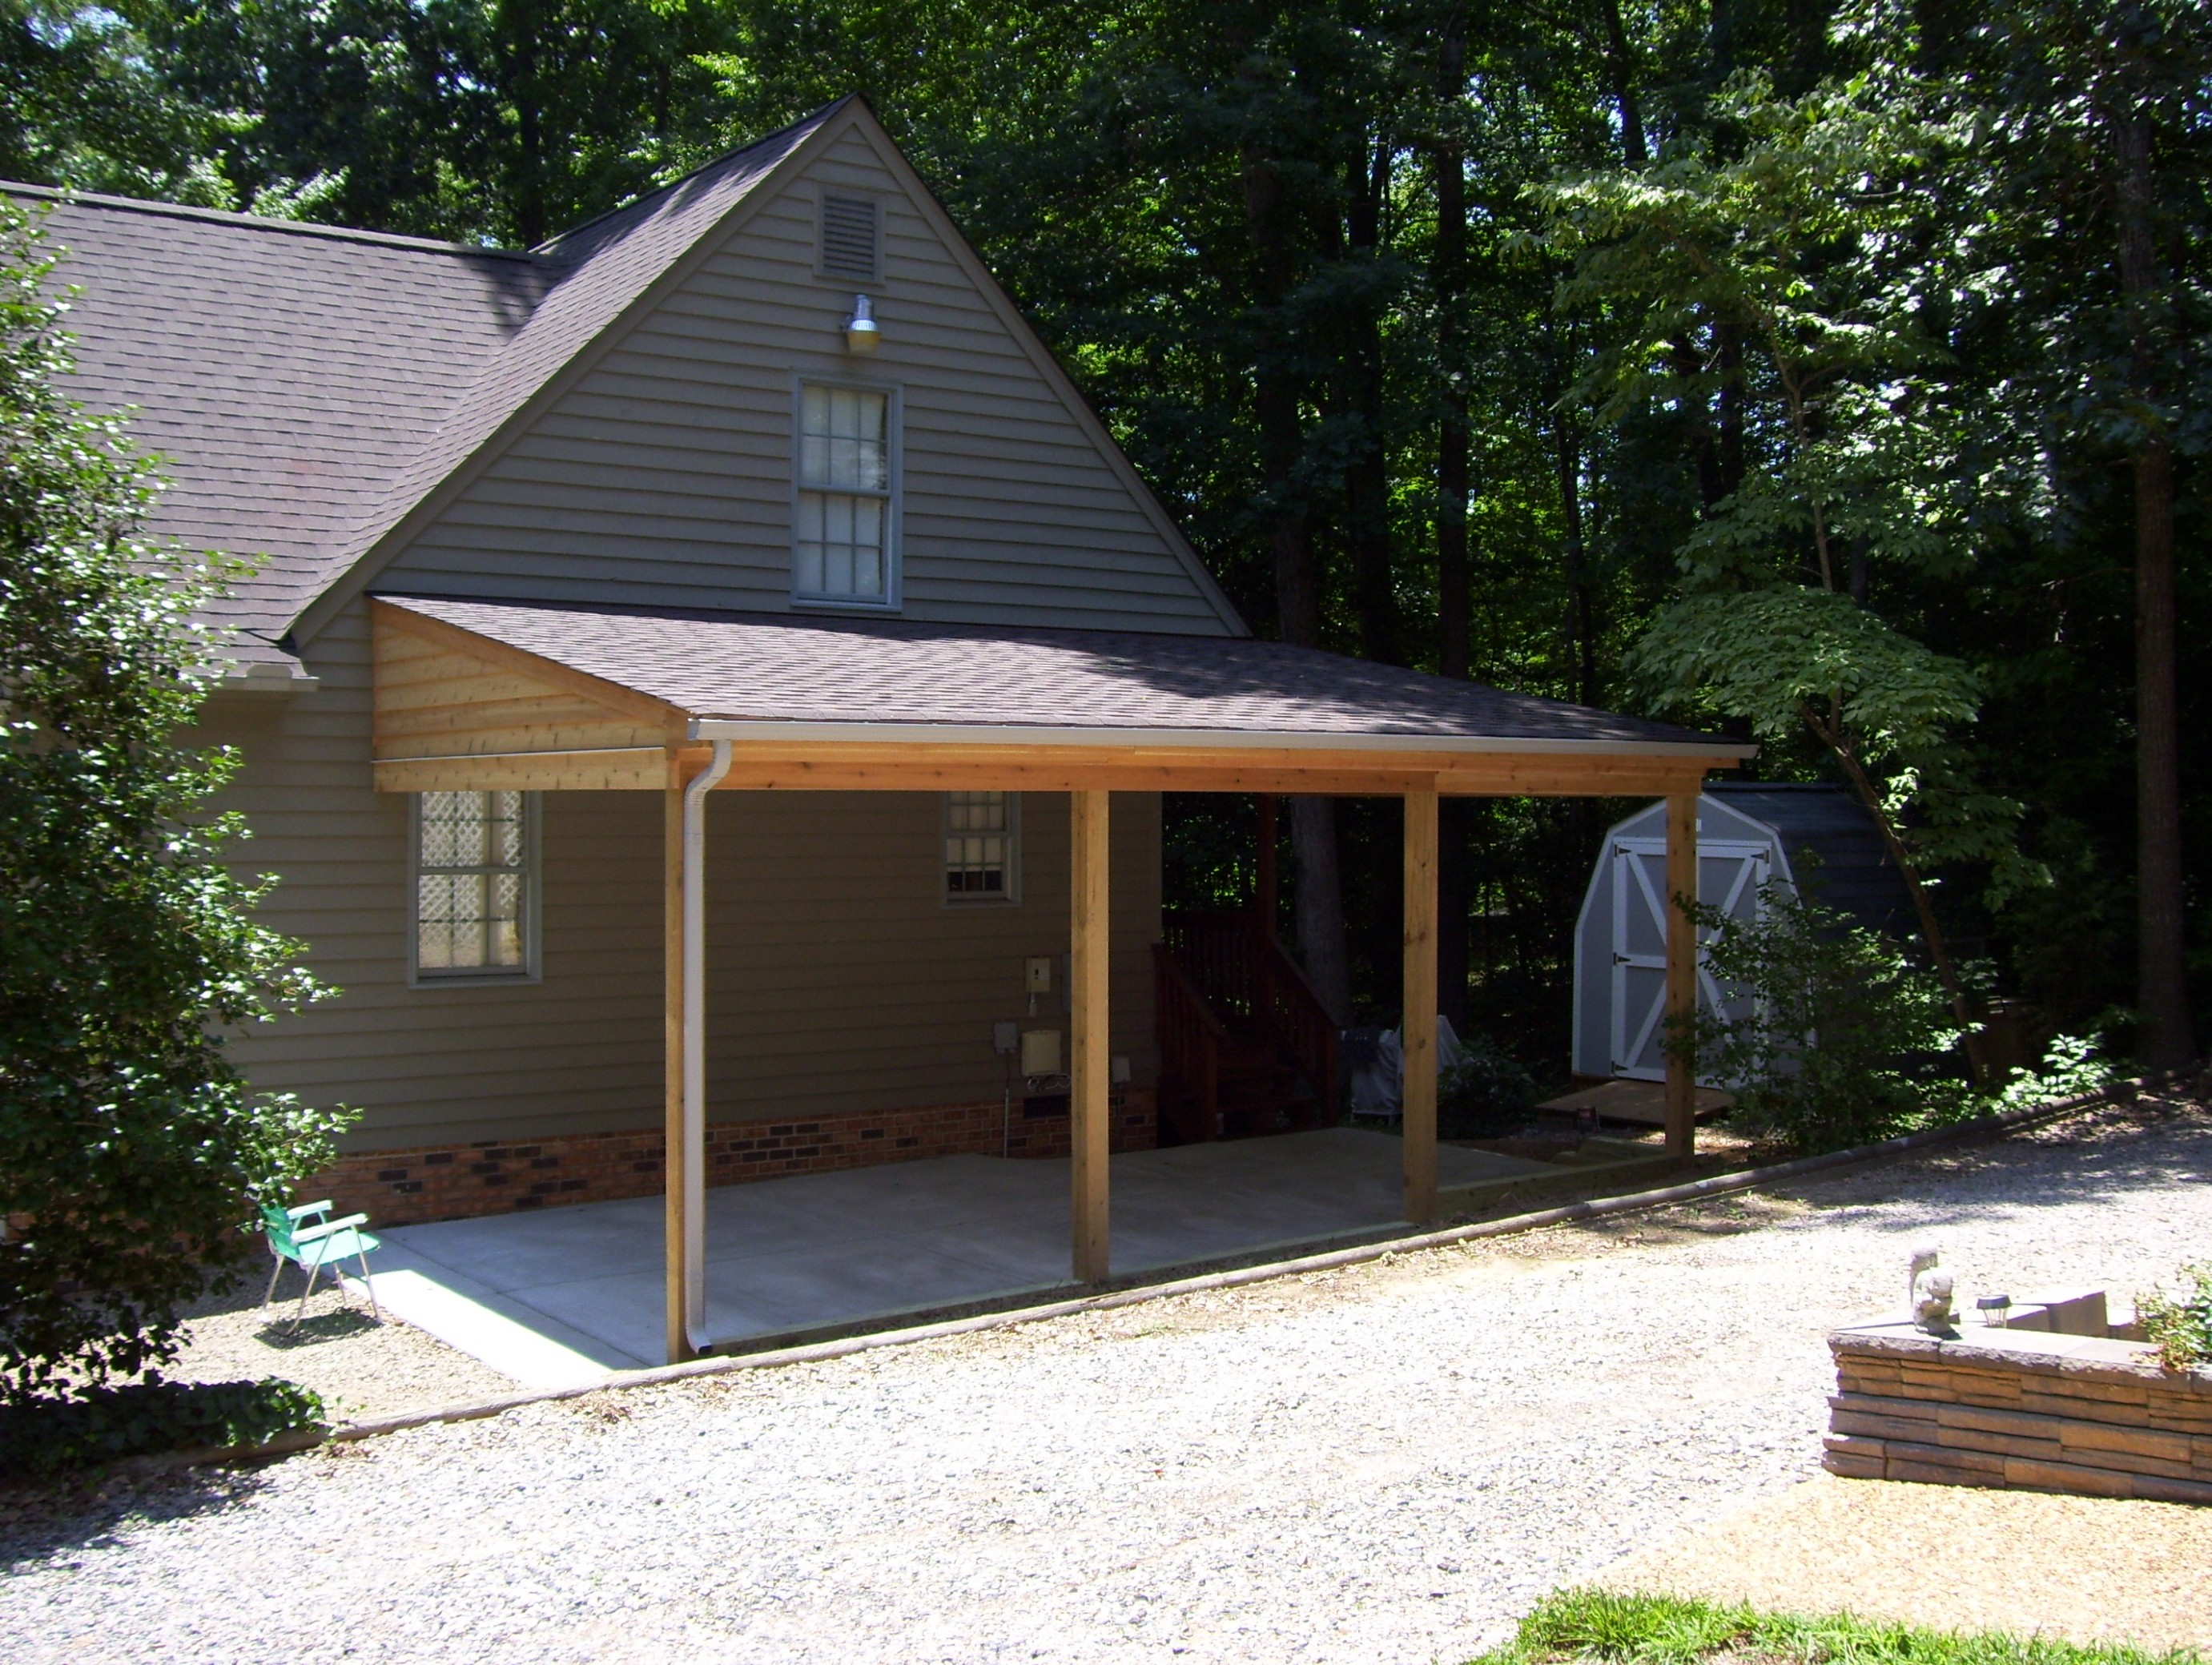 Seven Carport Sheds For Sale Rituals You Should Know In 7 | carport sheds for sale